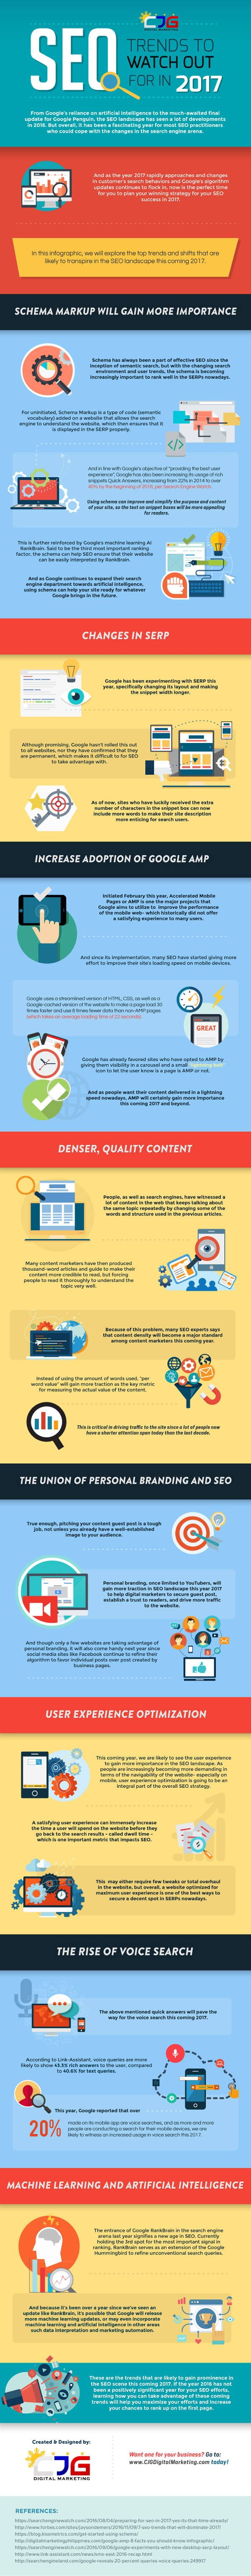 Eight predictions about SEO—what search engine optimization has in store for marketers in 2017—are outlined and explained in another infographic, created by CJG Digital Marketing.